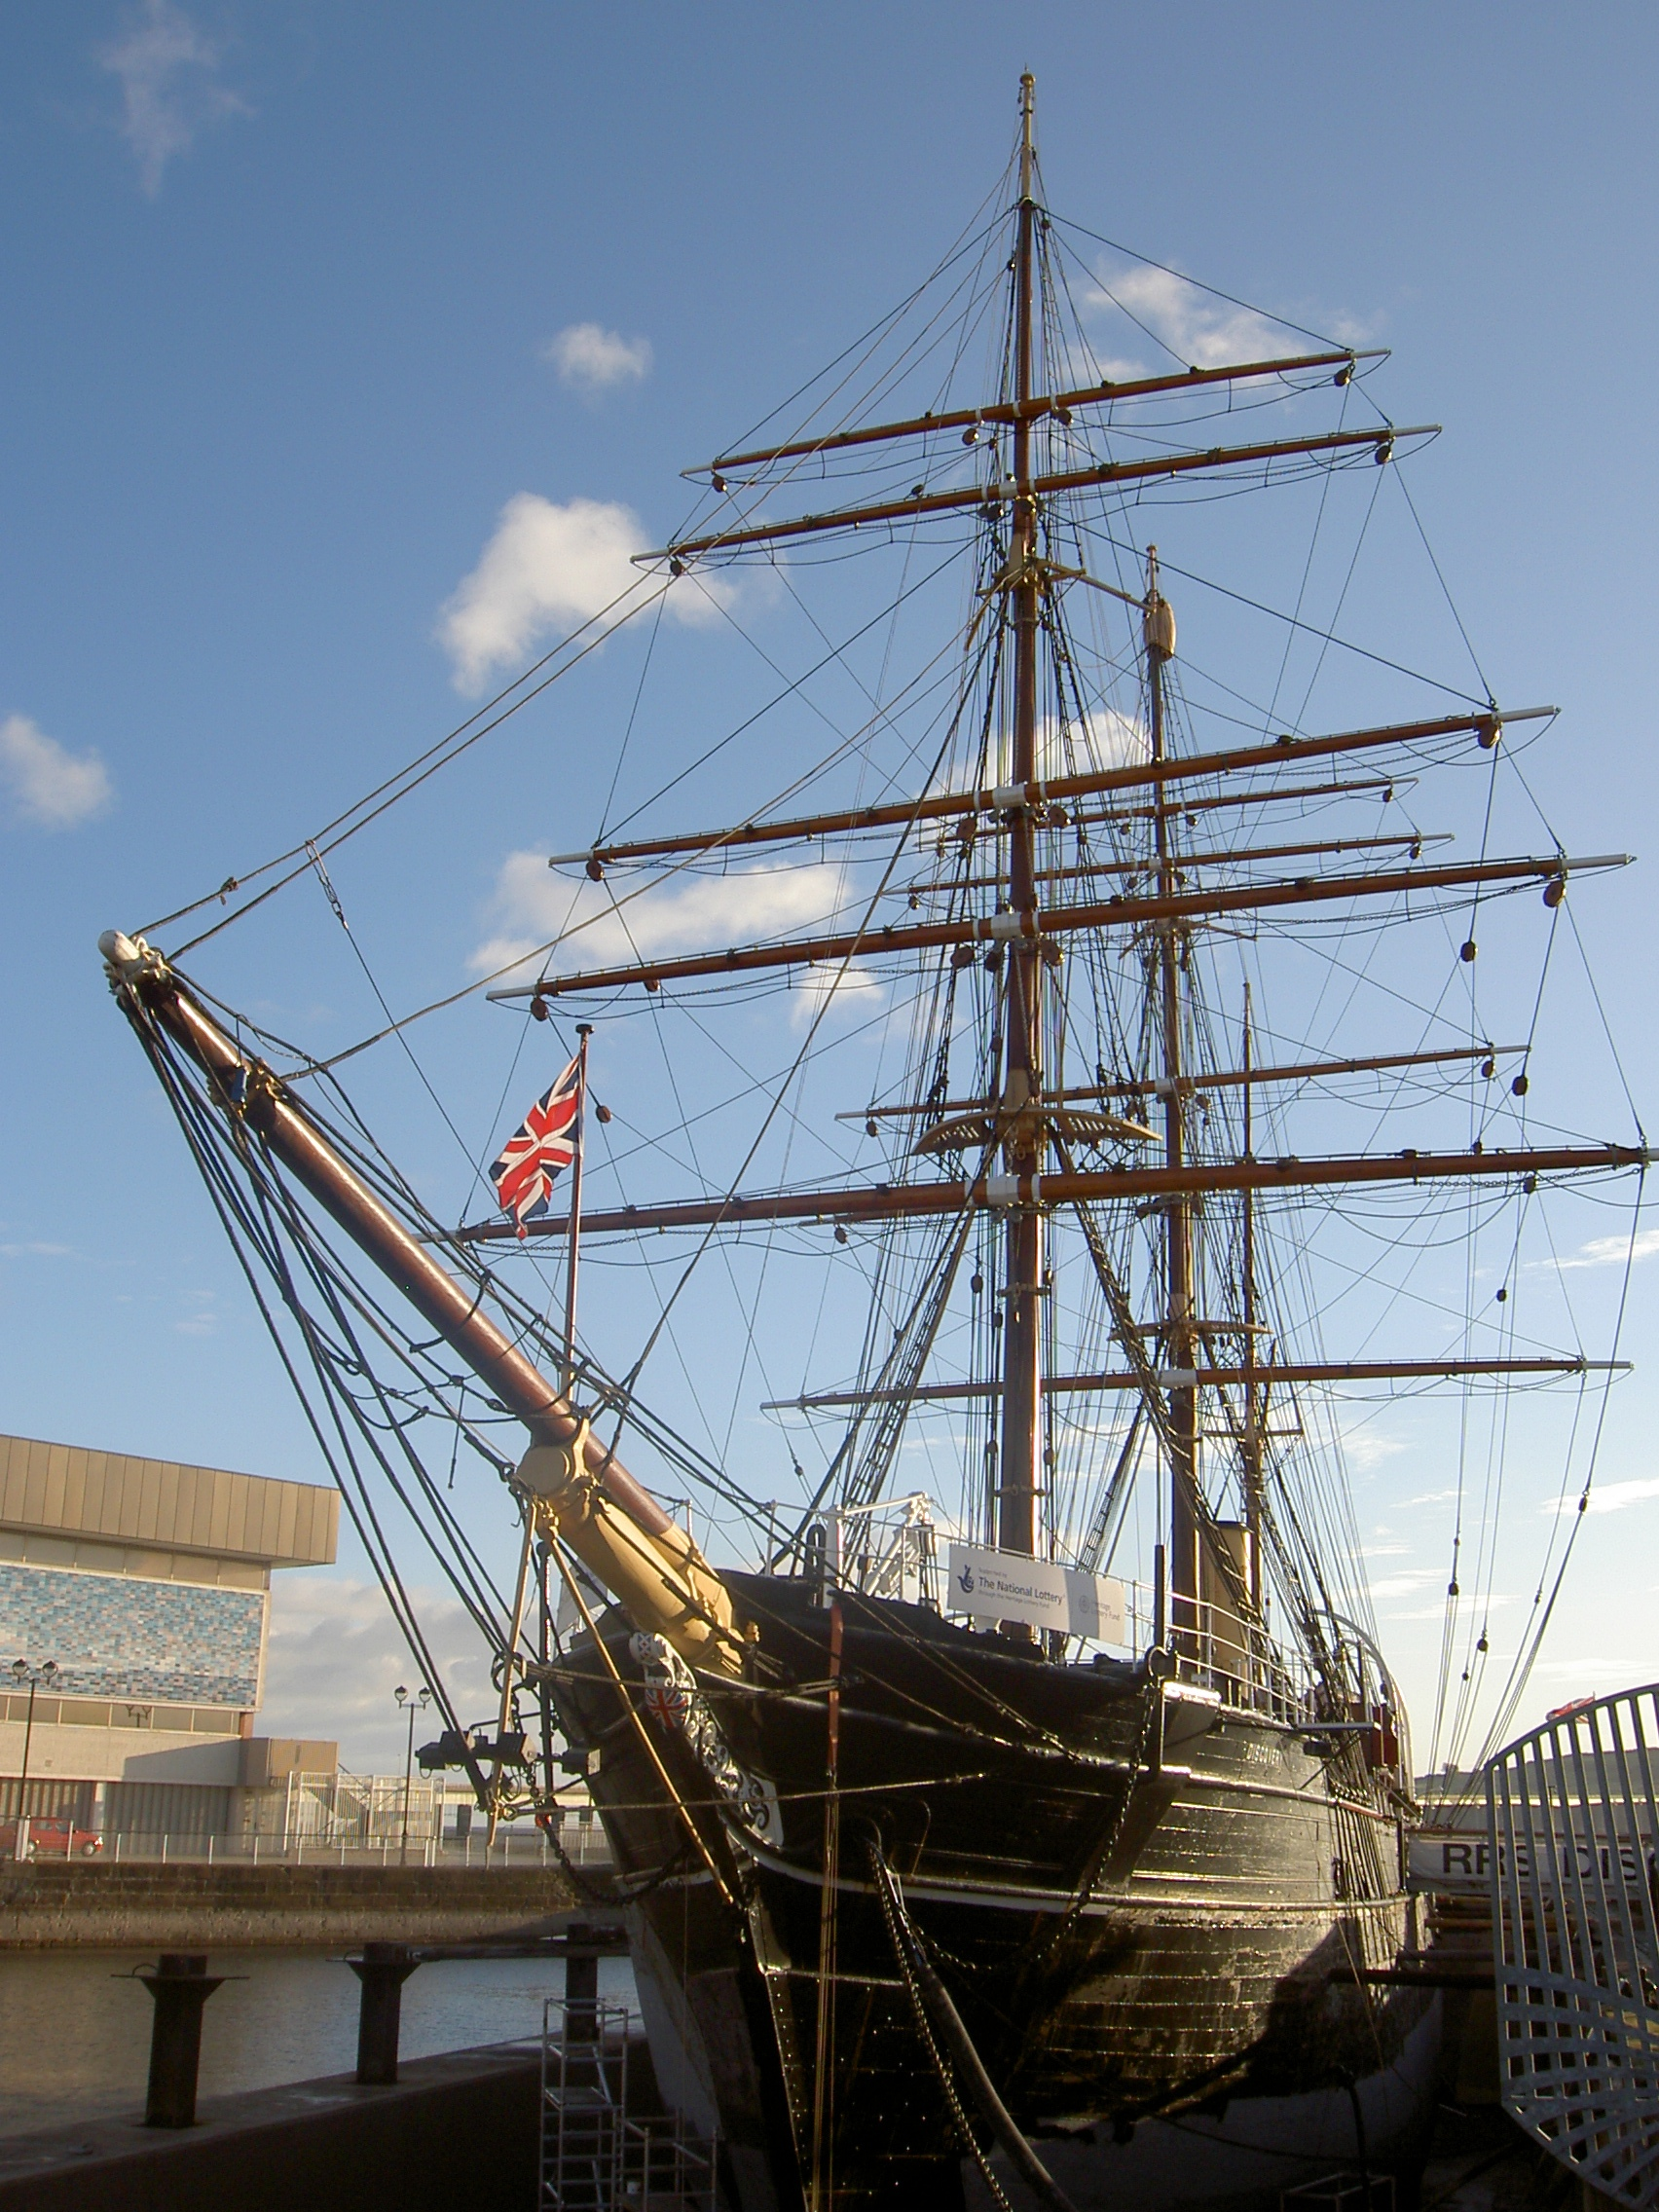 RRS Discovery Fife and Angus, RRS Discovery, Dundee, Scotland | sailing | Pinterest | Dundee ...